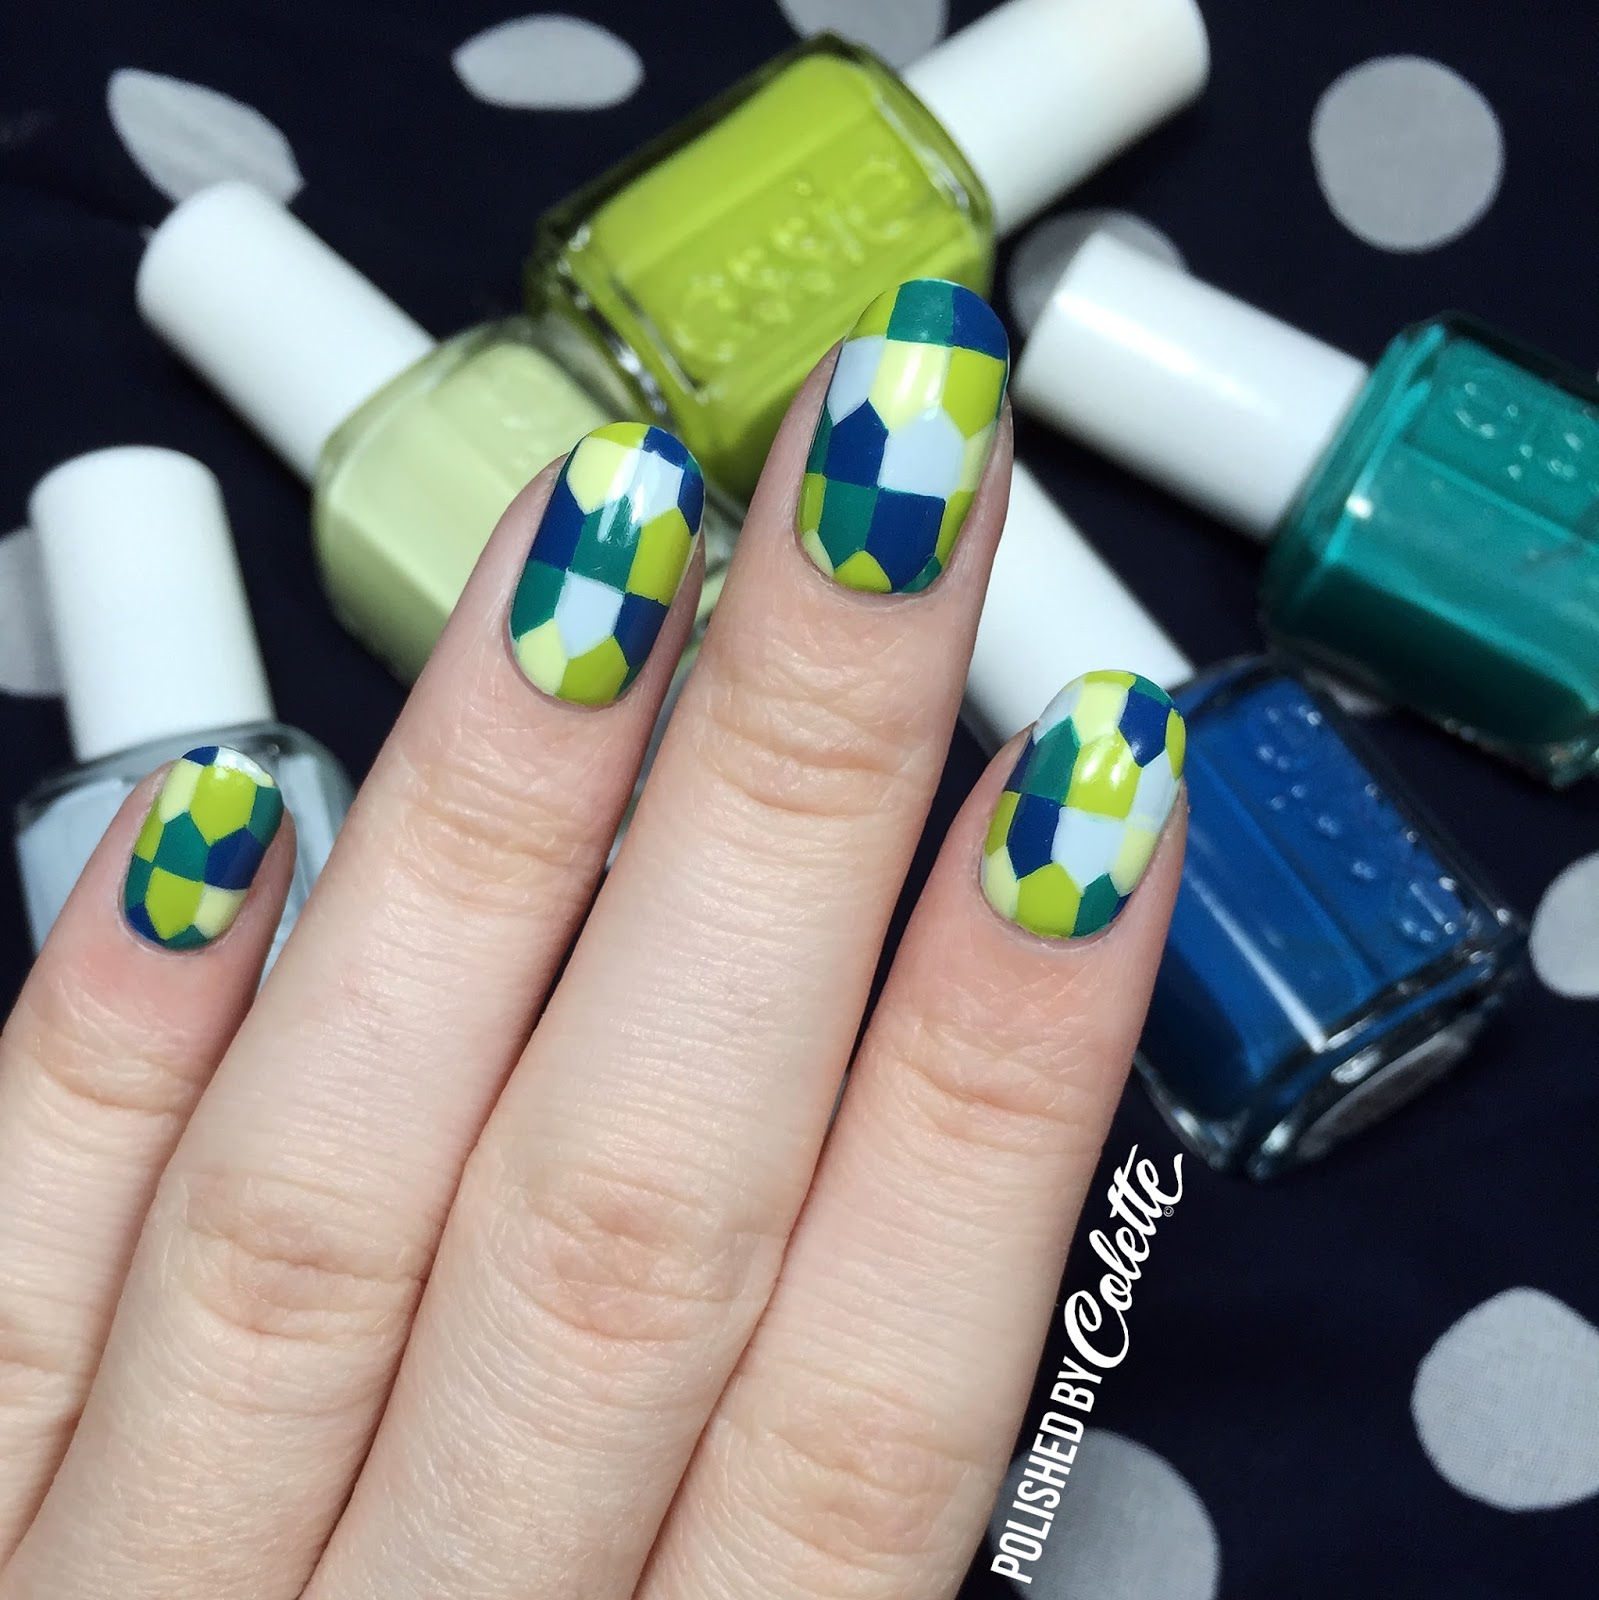 Essie Summer Nail Art & Tutorial - Polished By Colette